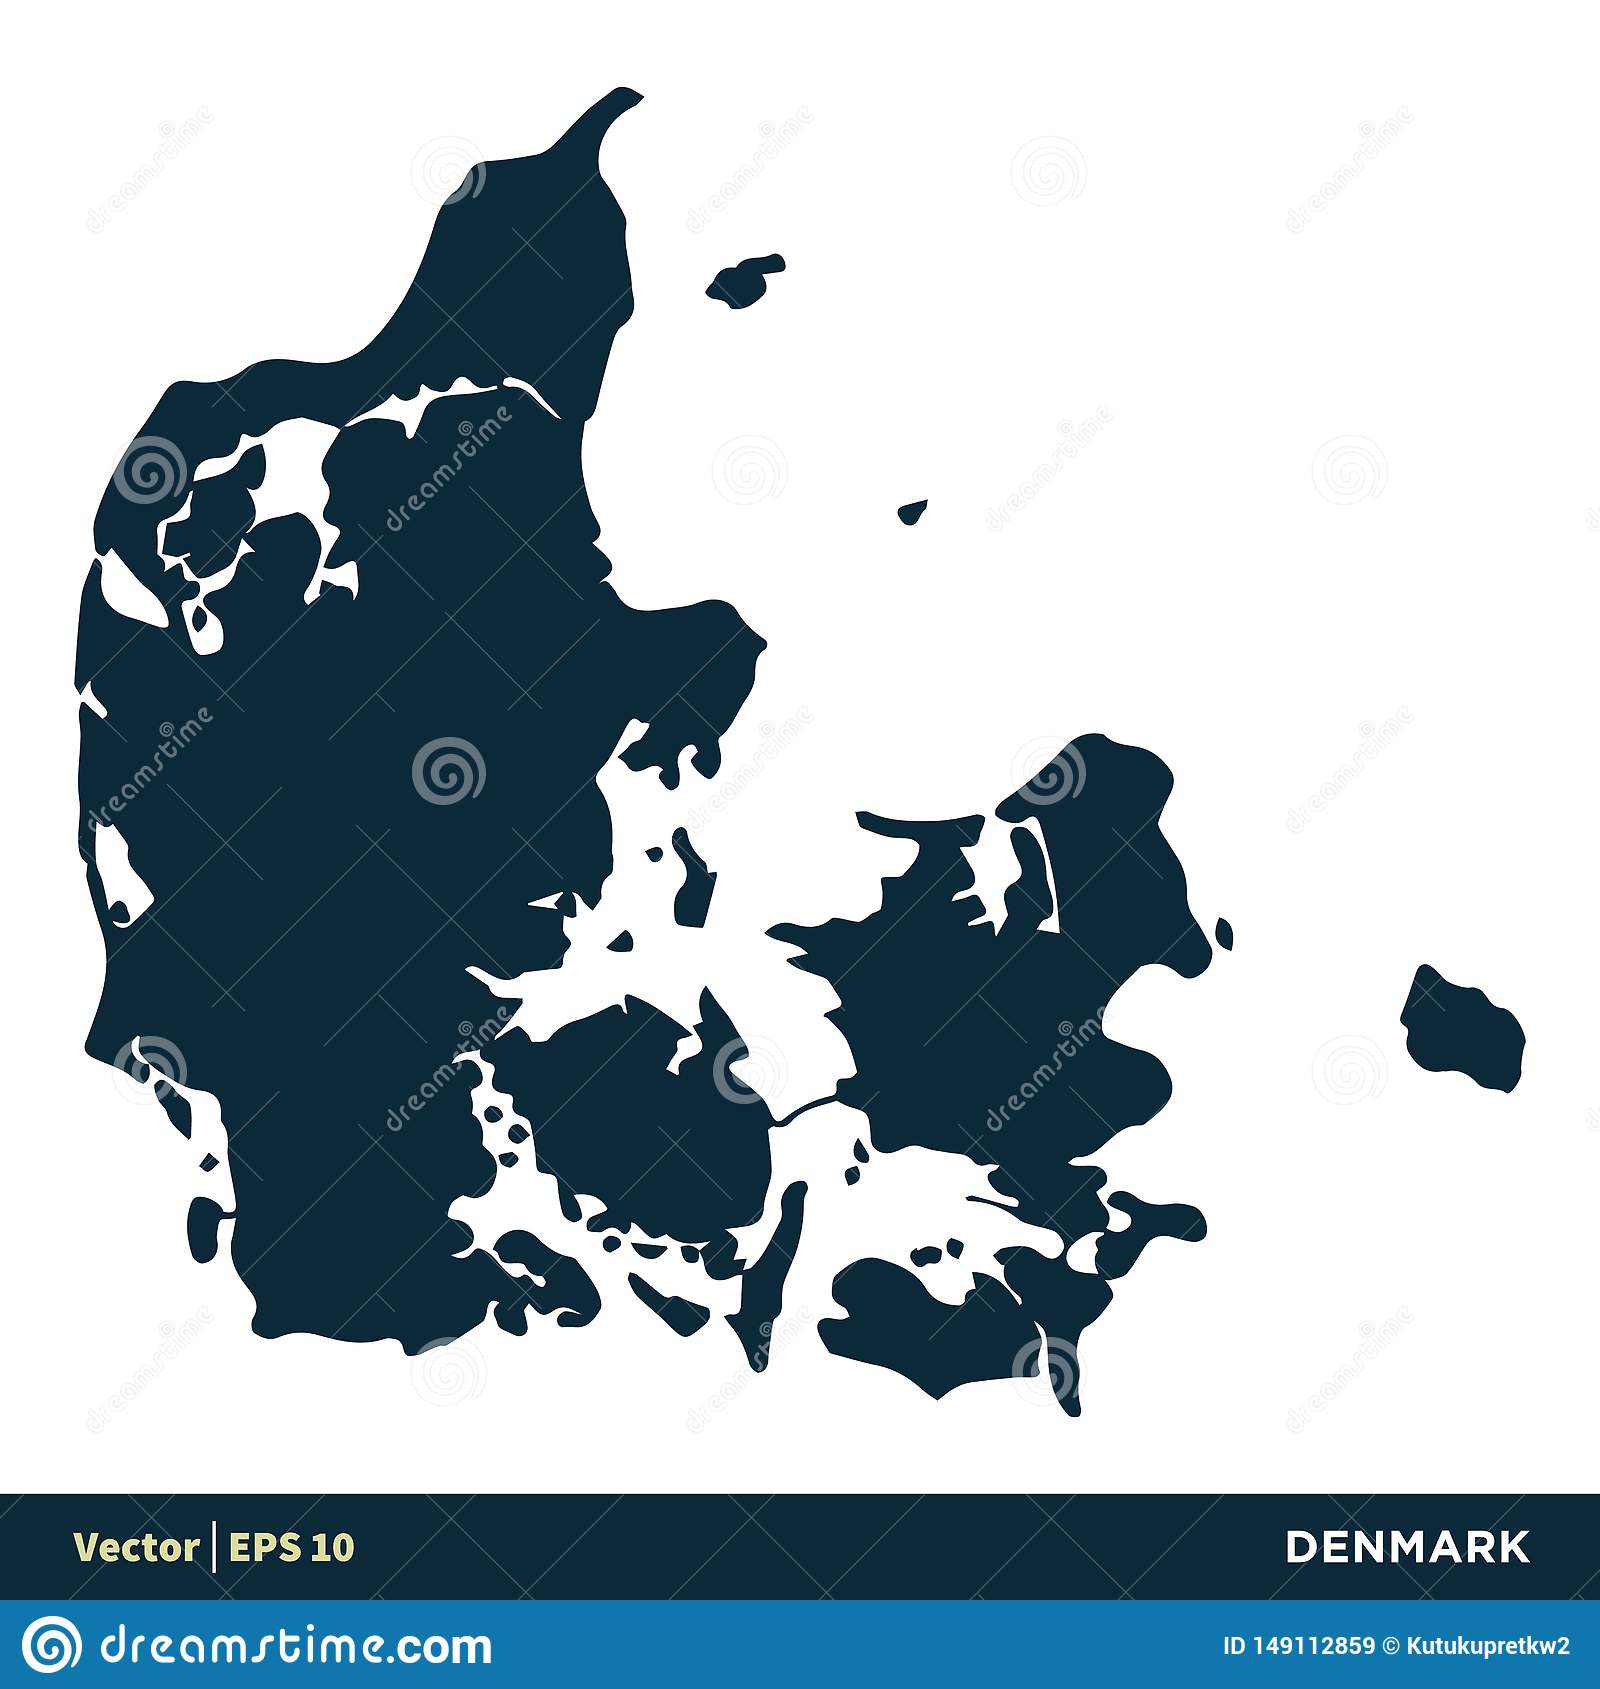 Picture of: Denmark Europe Countries Map Vector Icon Template Illustration Design Vector Eps 10 Stock Vector Illustration Of Country Global 149112859